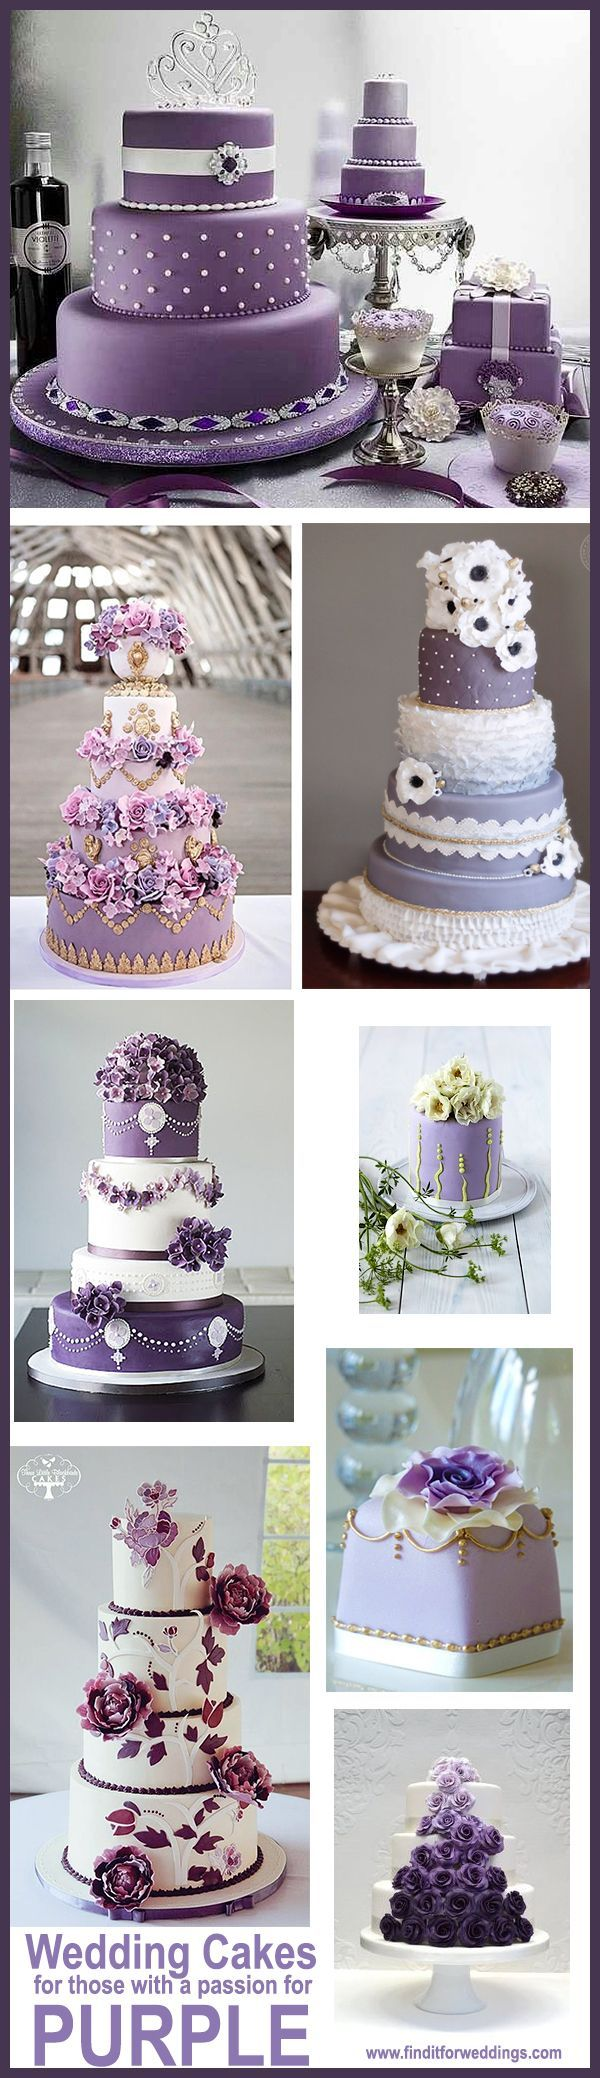 More wedding cake ideas: http://tips-wedding.com/wedding-cake-ideas/ This months favorite purple wedding cakes « FindItforWeddings FindItforWeddings